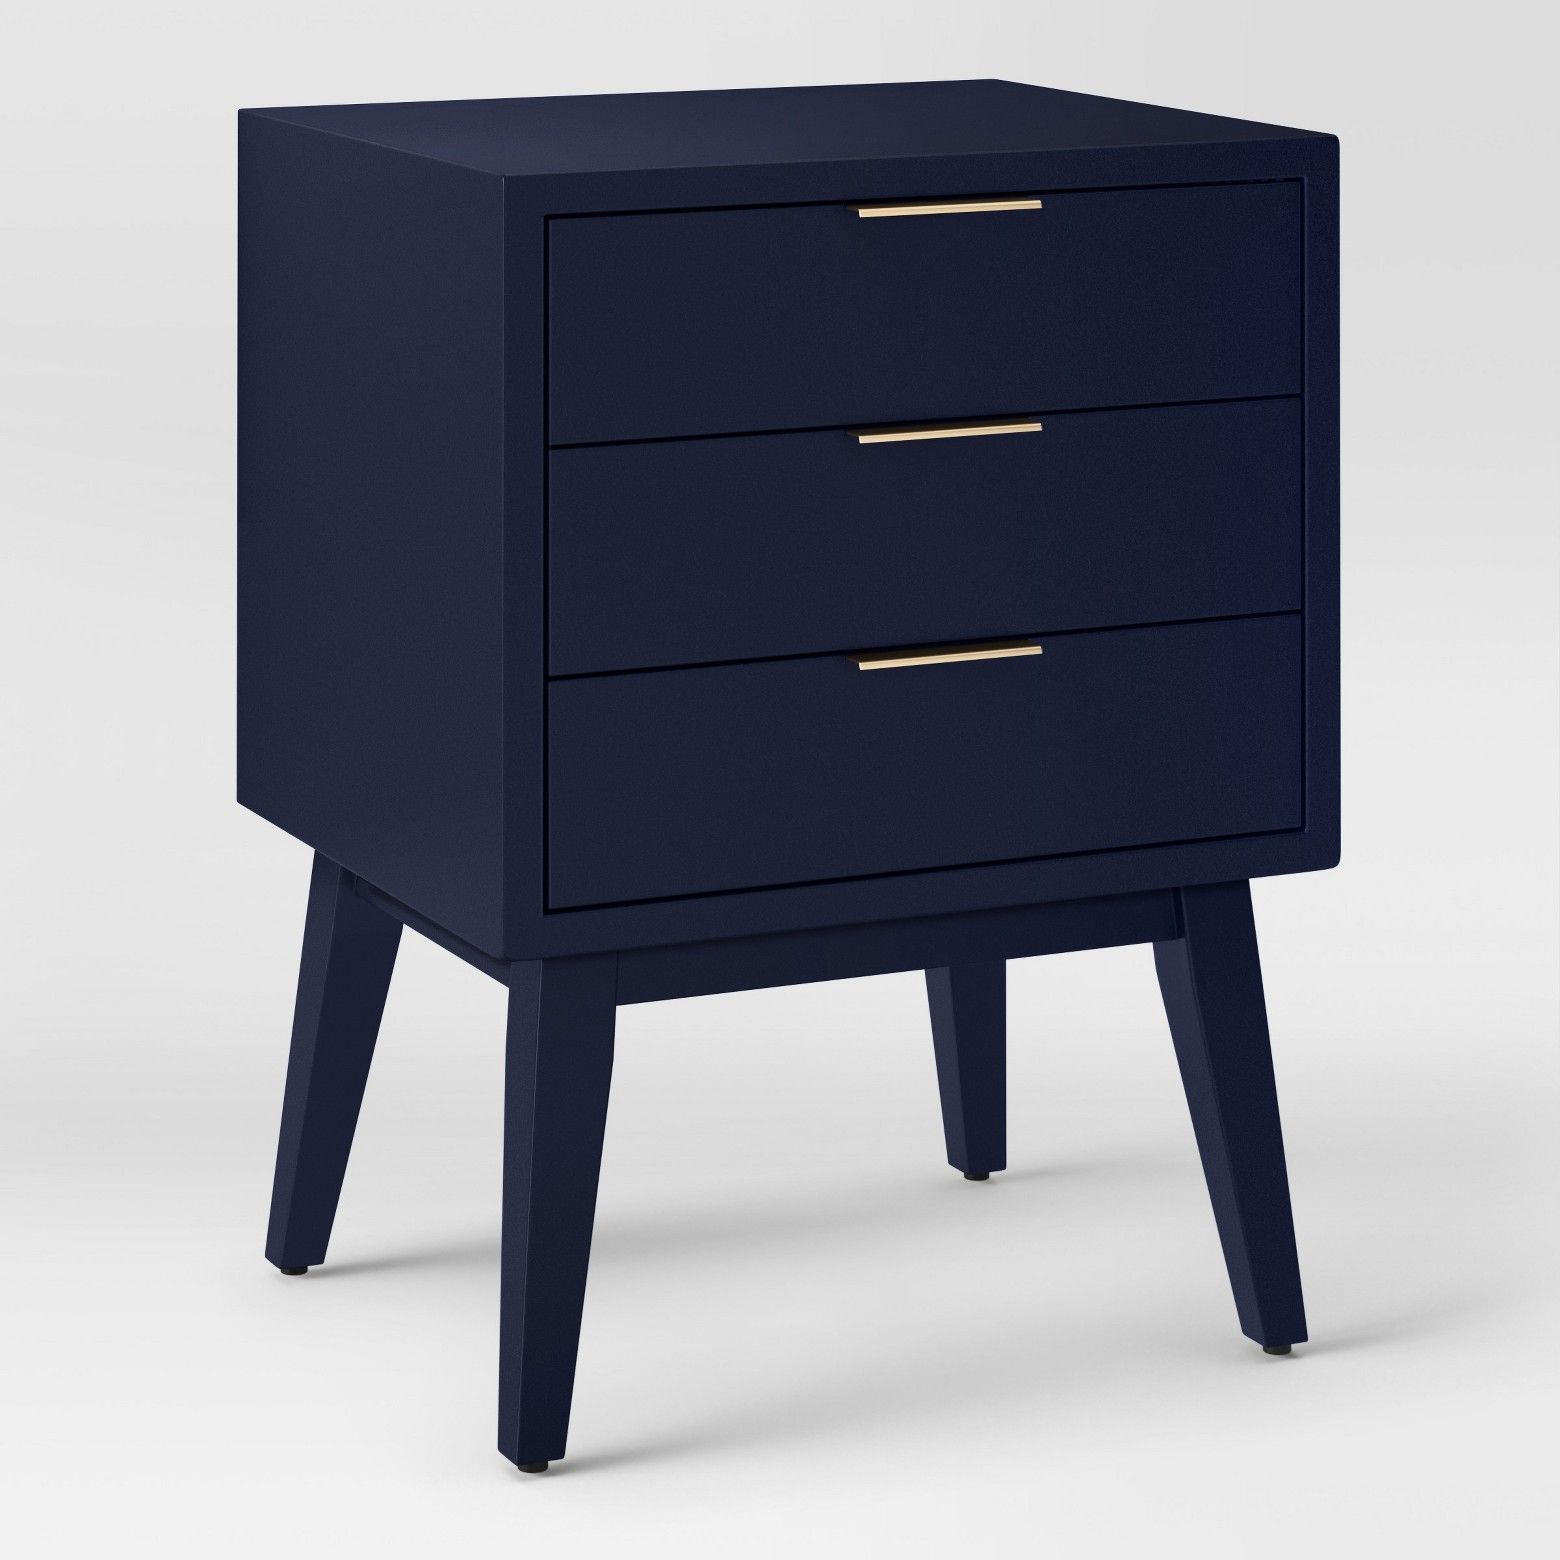 you can modern style with the three drawer end table from drawers project laura ashley charleston furniture narrow black nightstand metal wire coffee mainstays desk instructions